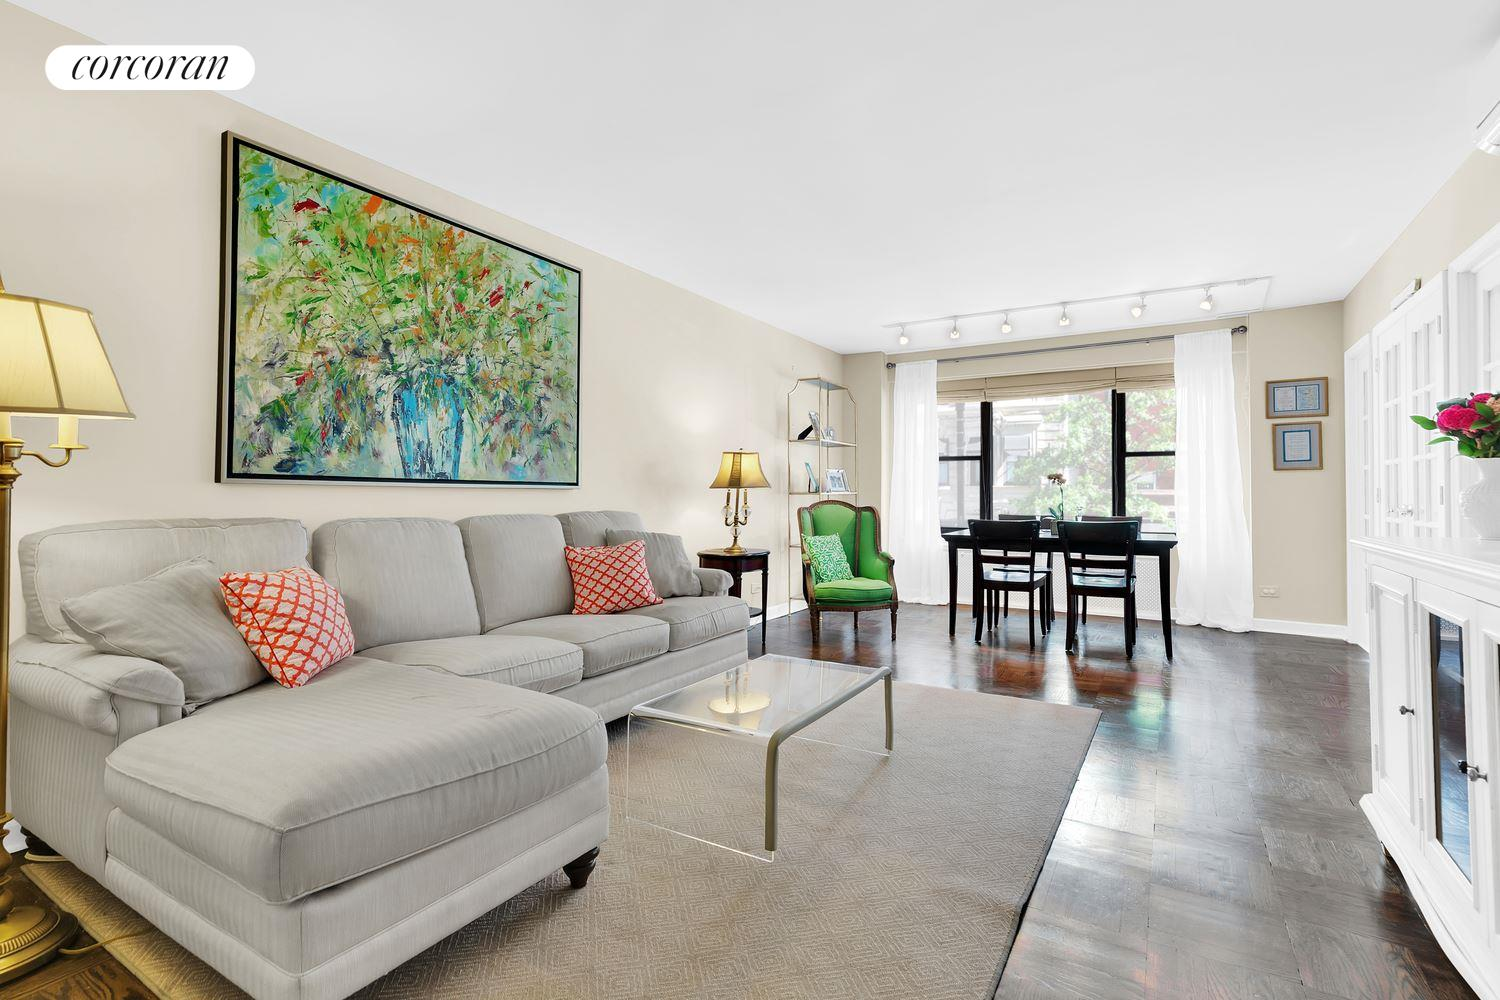 2 Fifth Avenue, 2R, Living Room